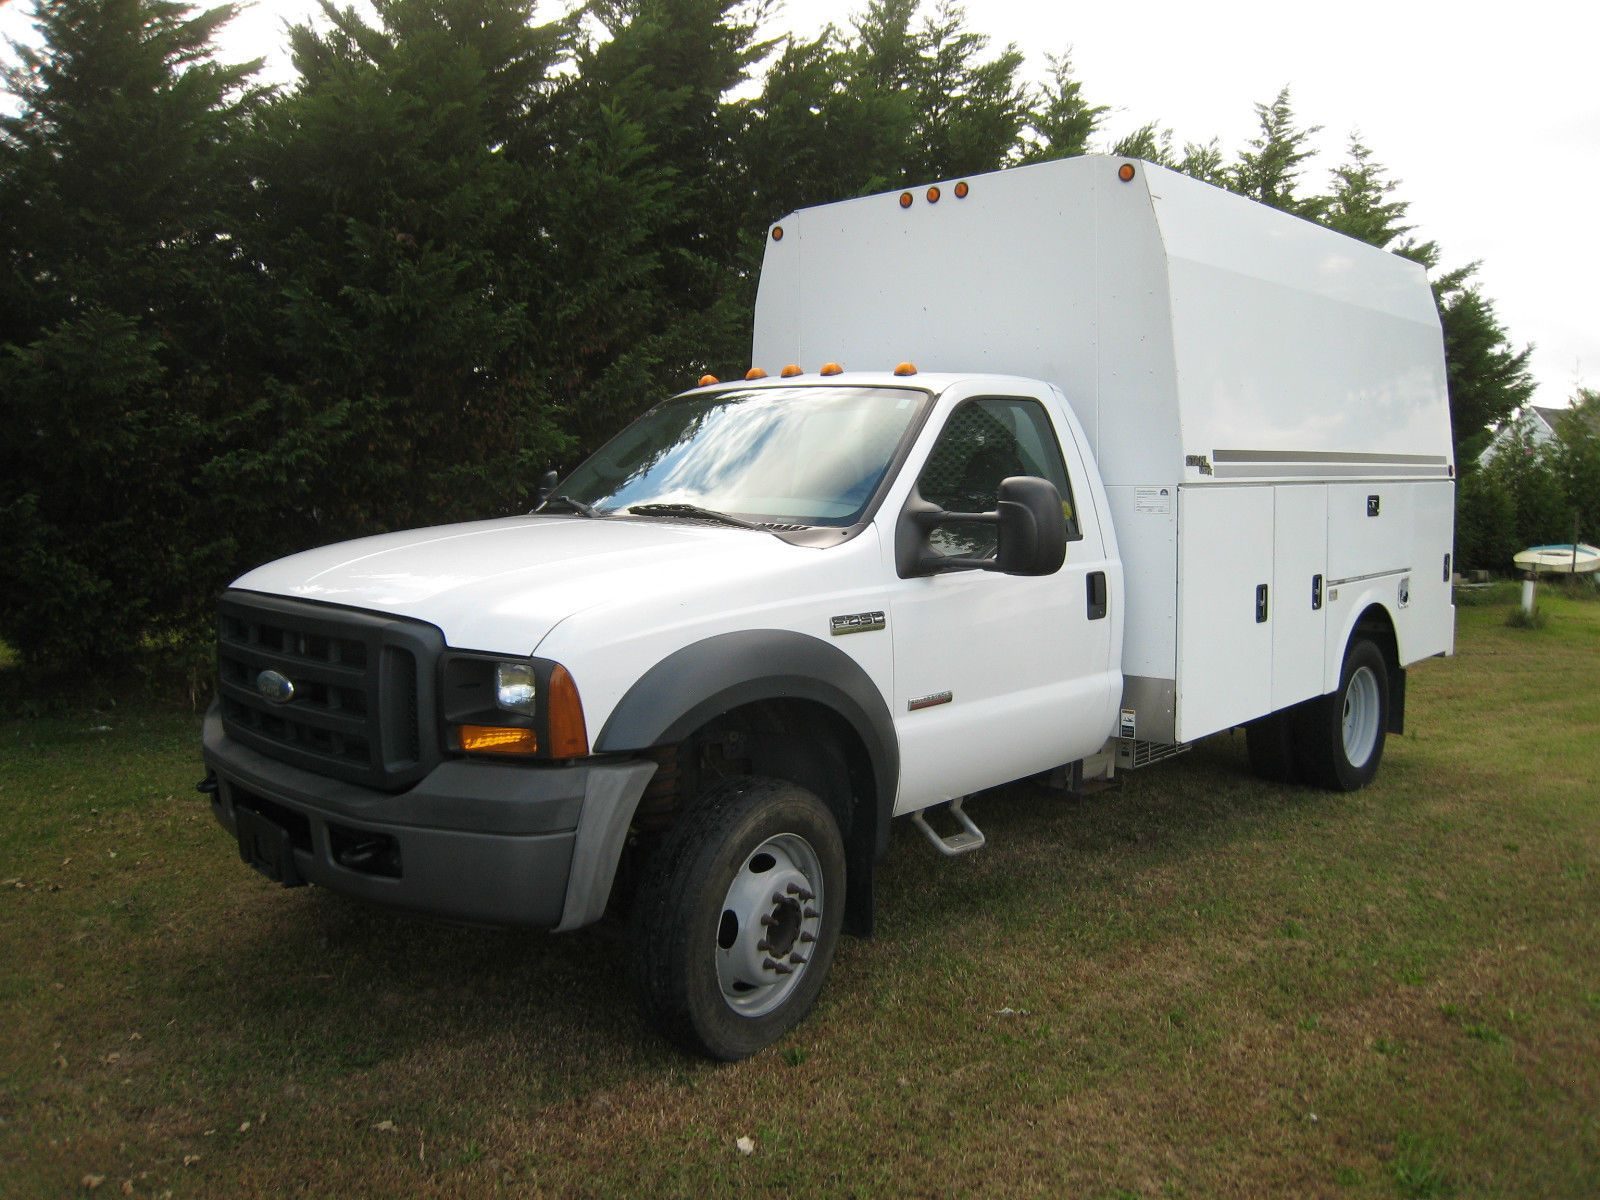 2006 ford f-450 utility service truck with stahl walk-in van body